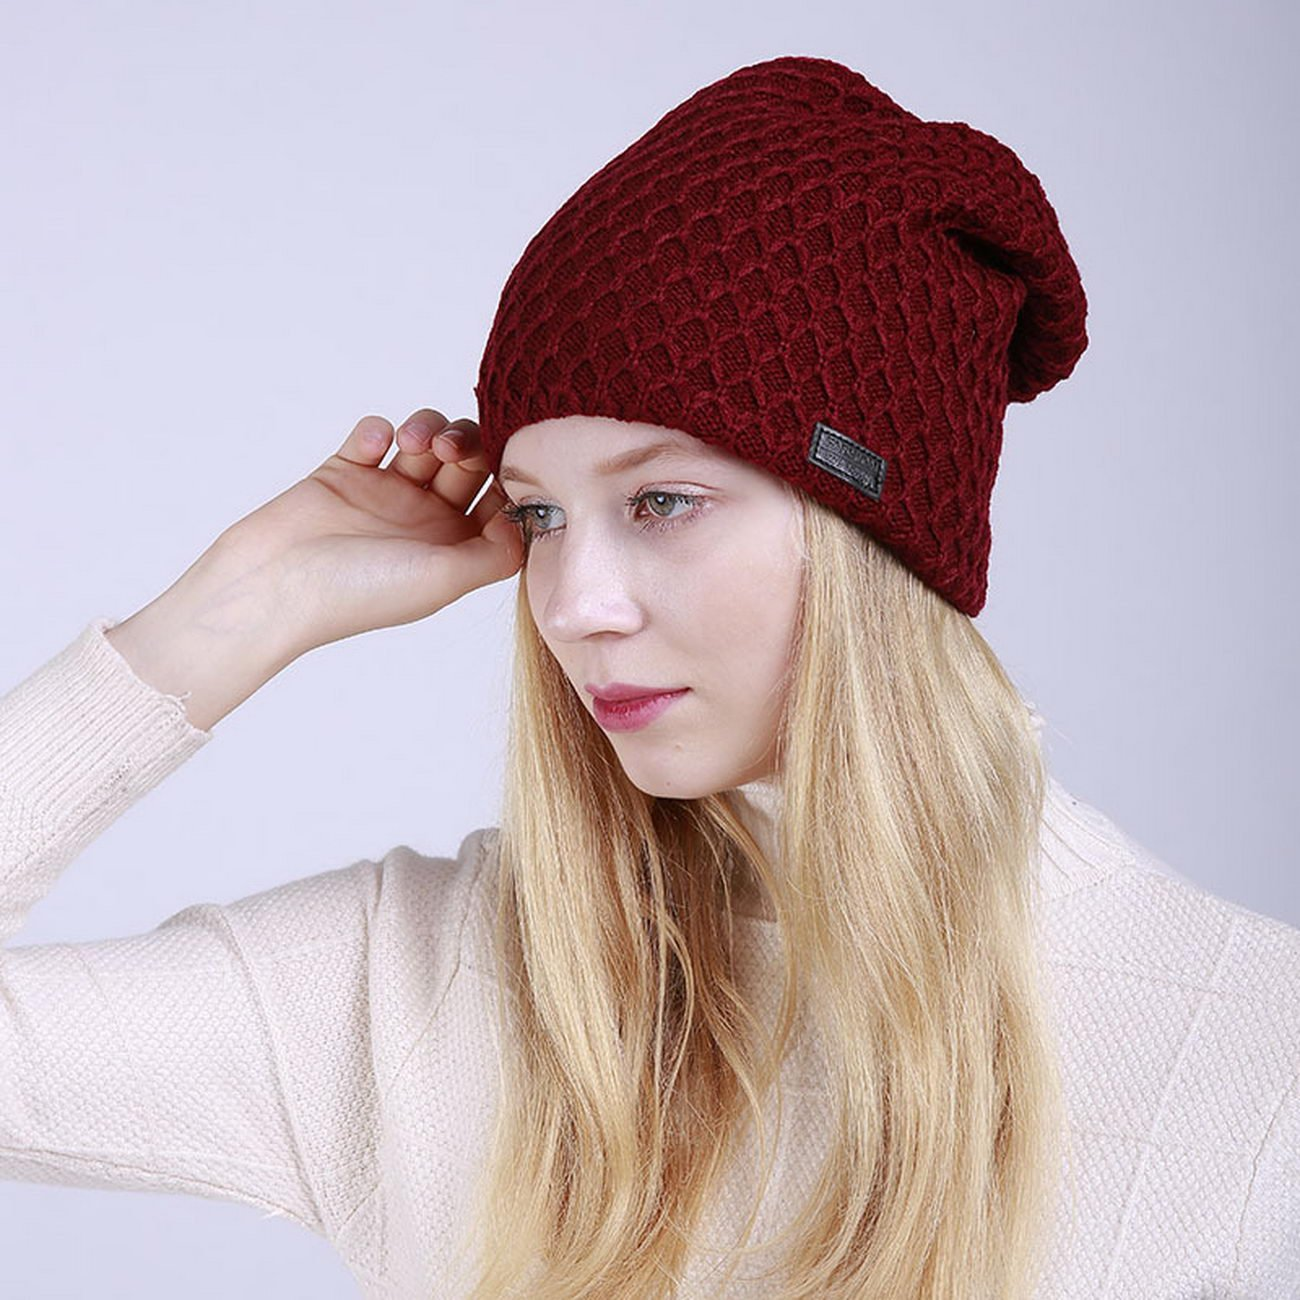 KUAILEJIA ms m047 new mesh hat lady hat wool cap autumn and winter outdoor warm men lady